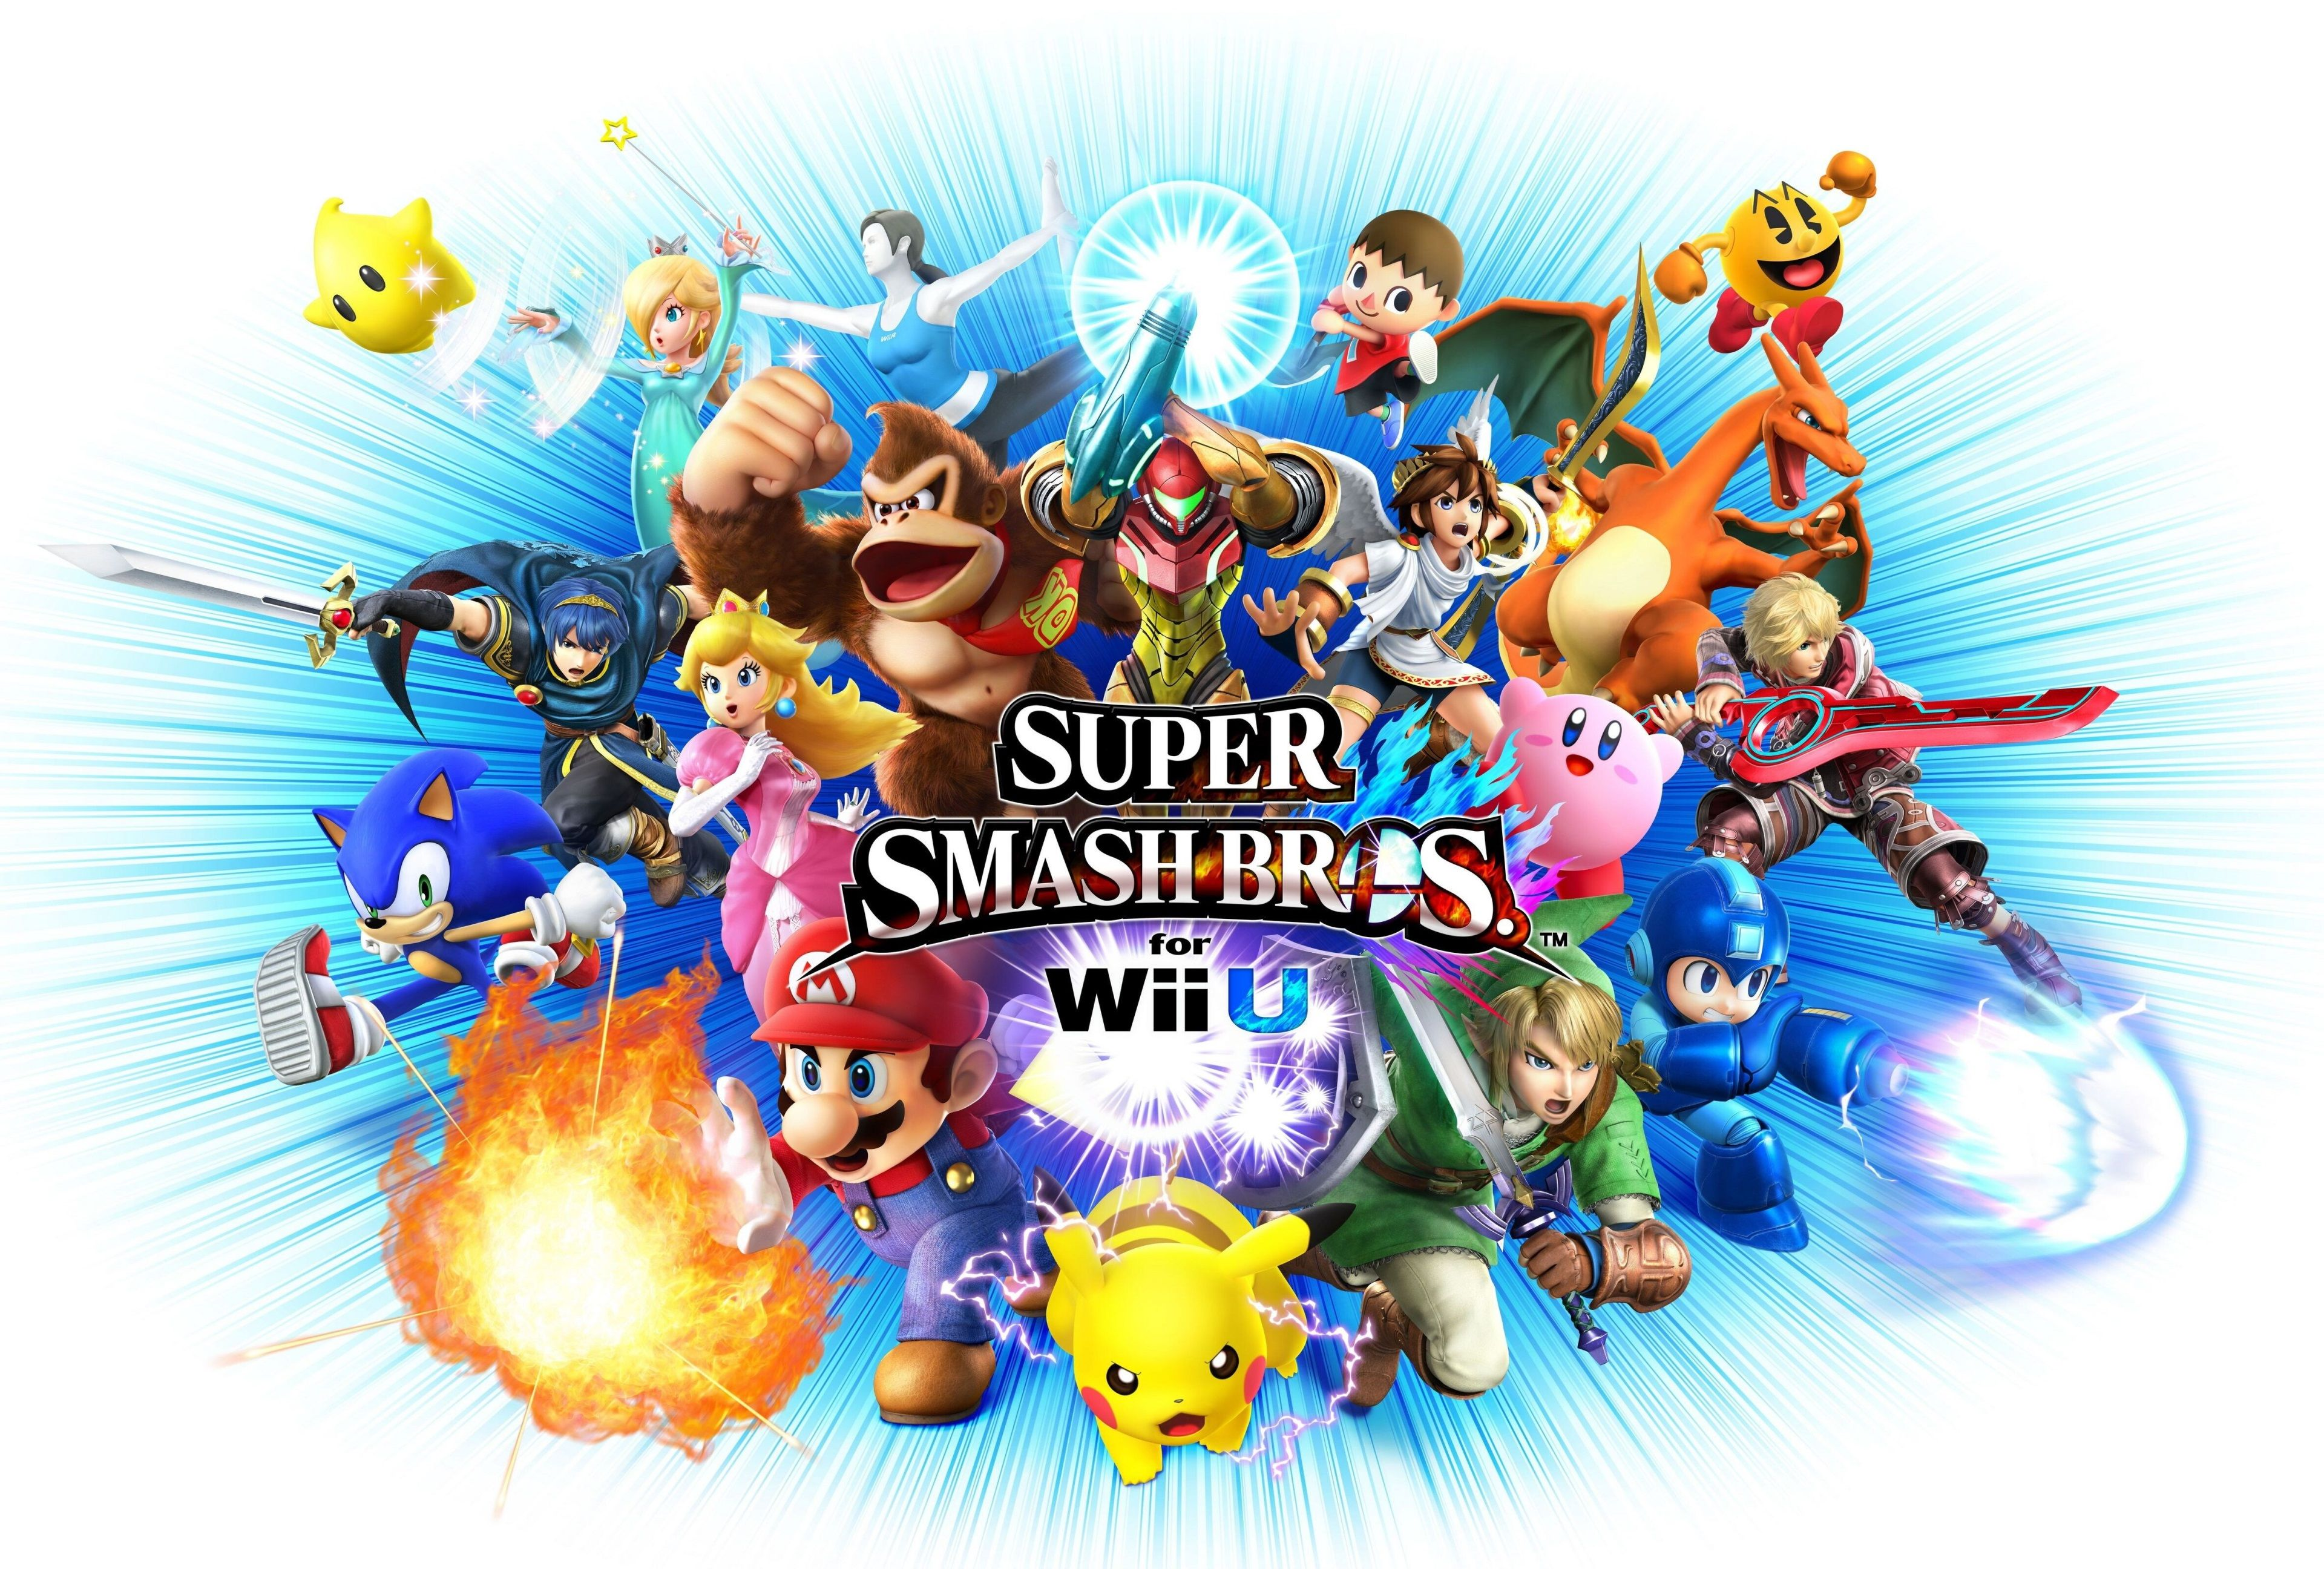 3840x2592 Super Smash Bros 4k Hd Image Wallpaper Free Download Super Smash Bros Characters Smash Bros Wii Smash Bros